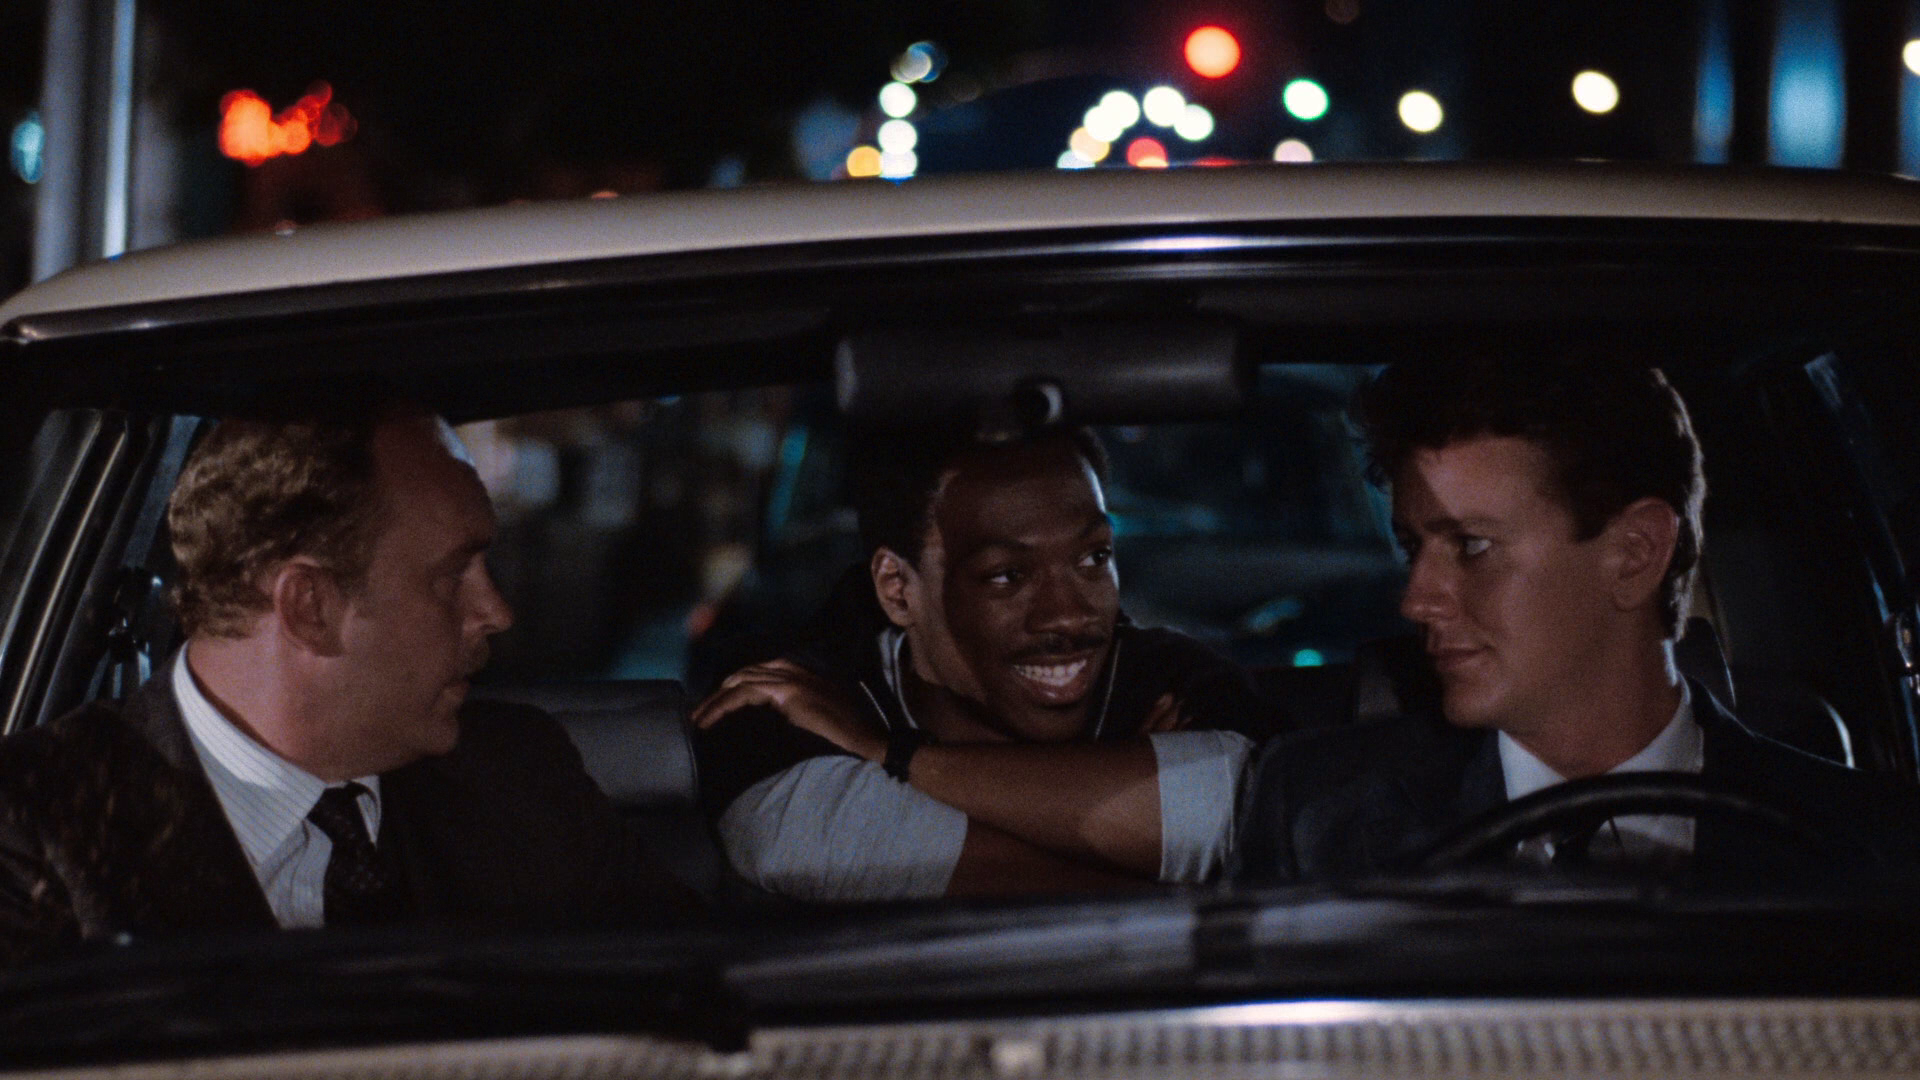 Film Freak Central - Beverly Hills Cop (1984) + Beverly Hills Cop: 3 Movie Collection - Blu-ray Discs